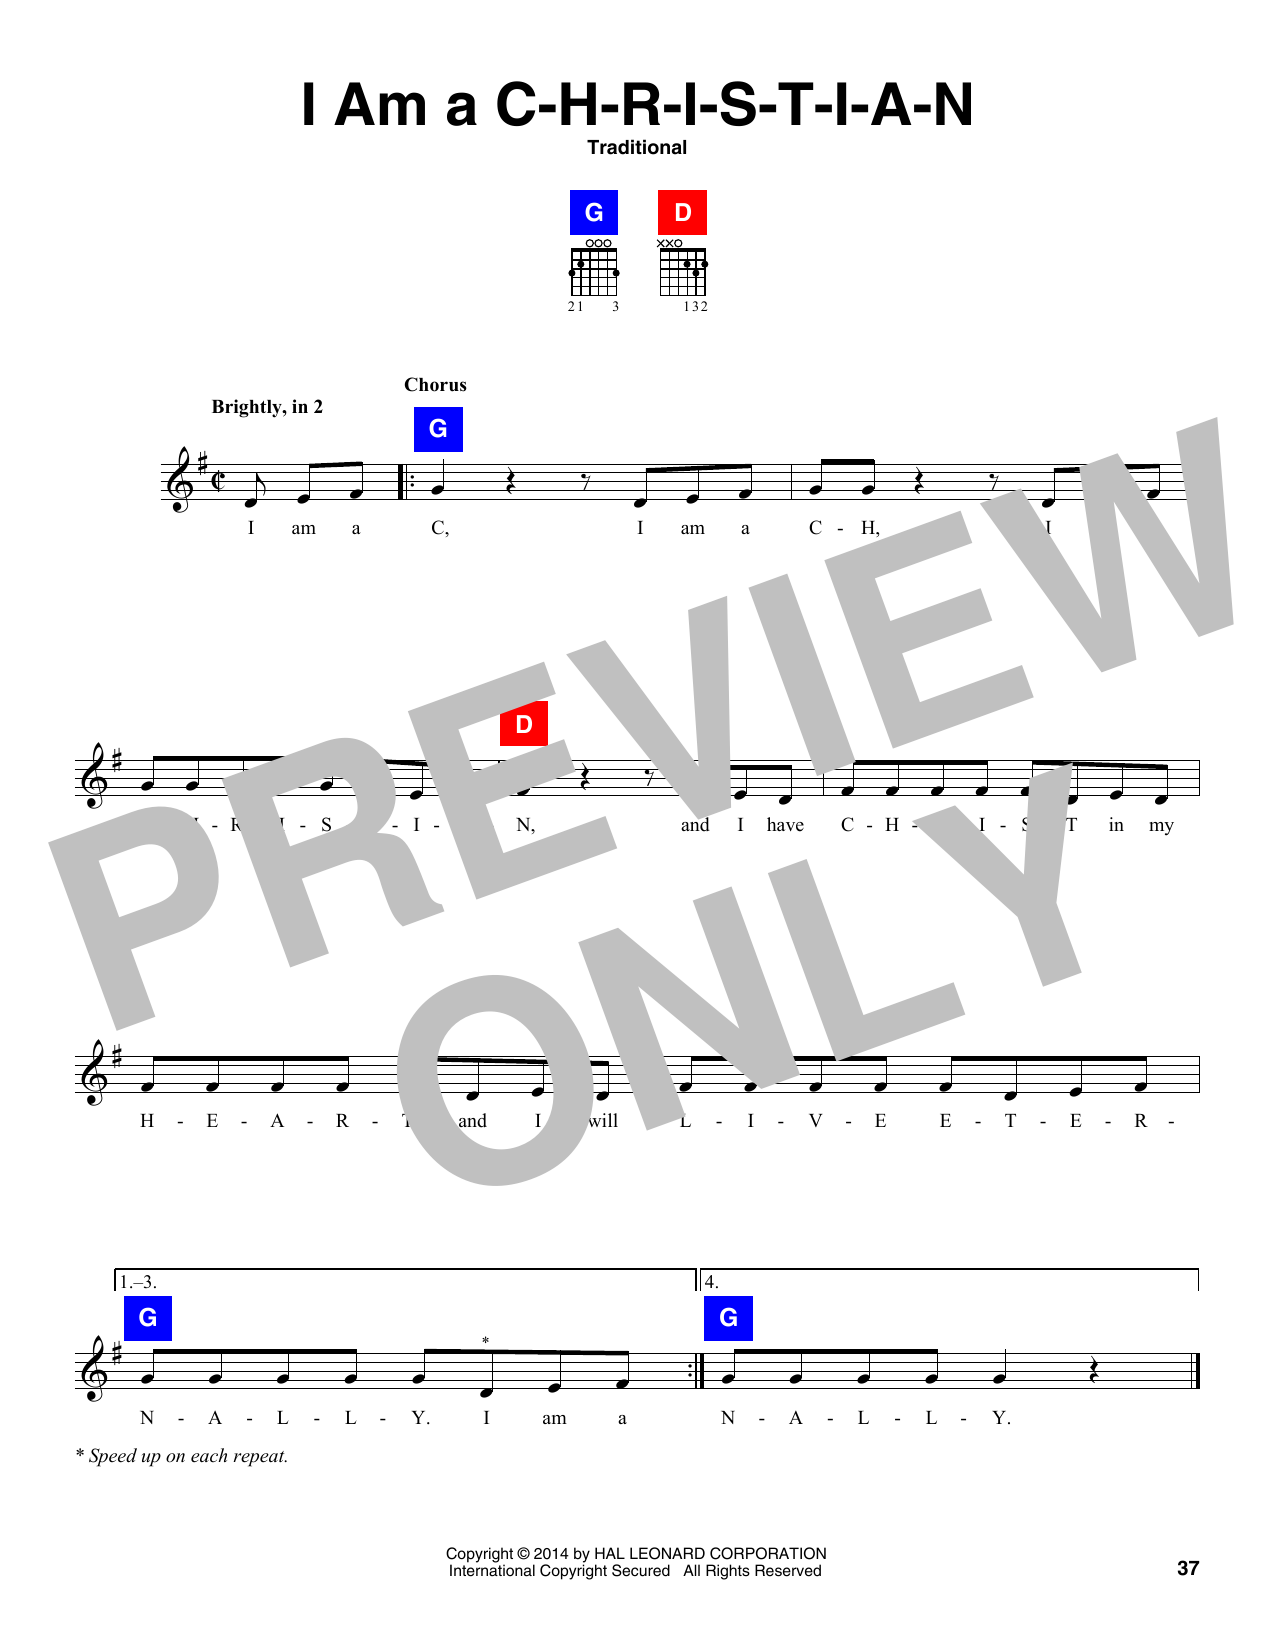 Traditional I Am A C-H-R-I-S-T-I-A-N sheet music notes and chords. Download Printable PDF.